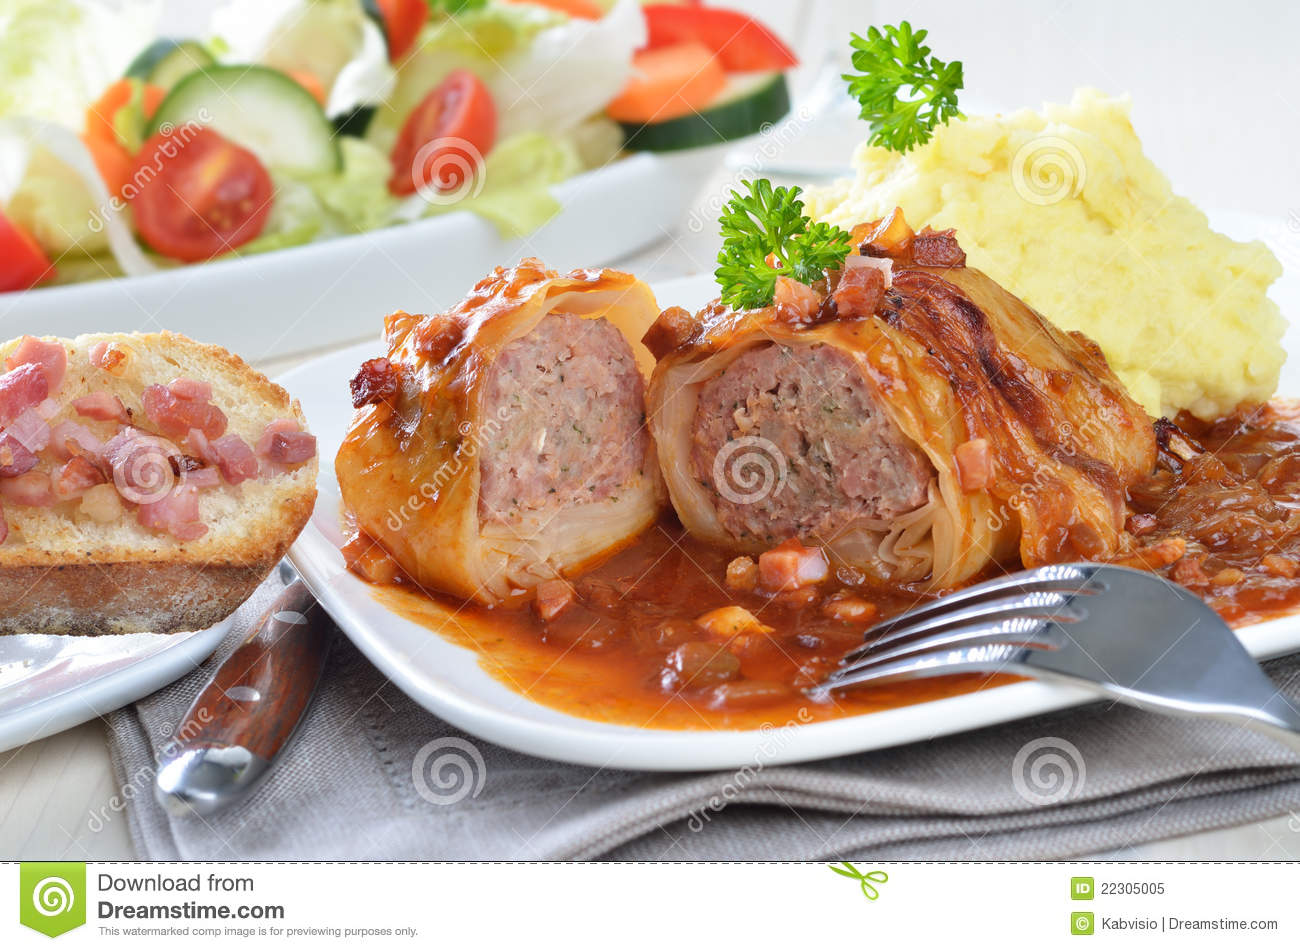 Cabbage Rolls Clipart.